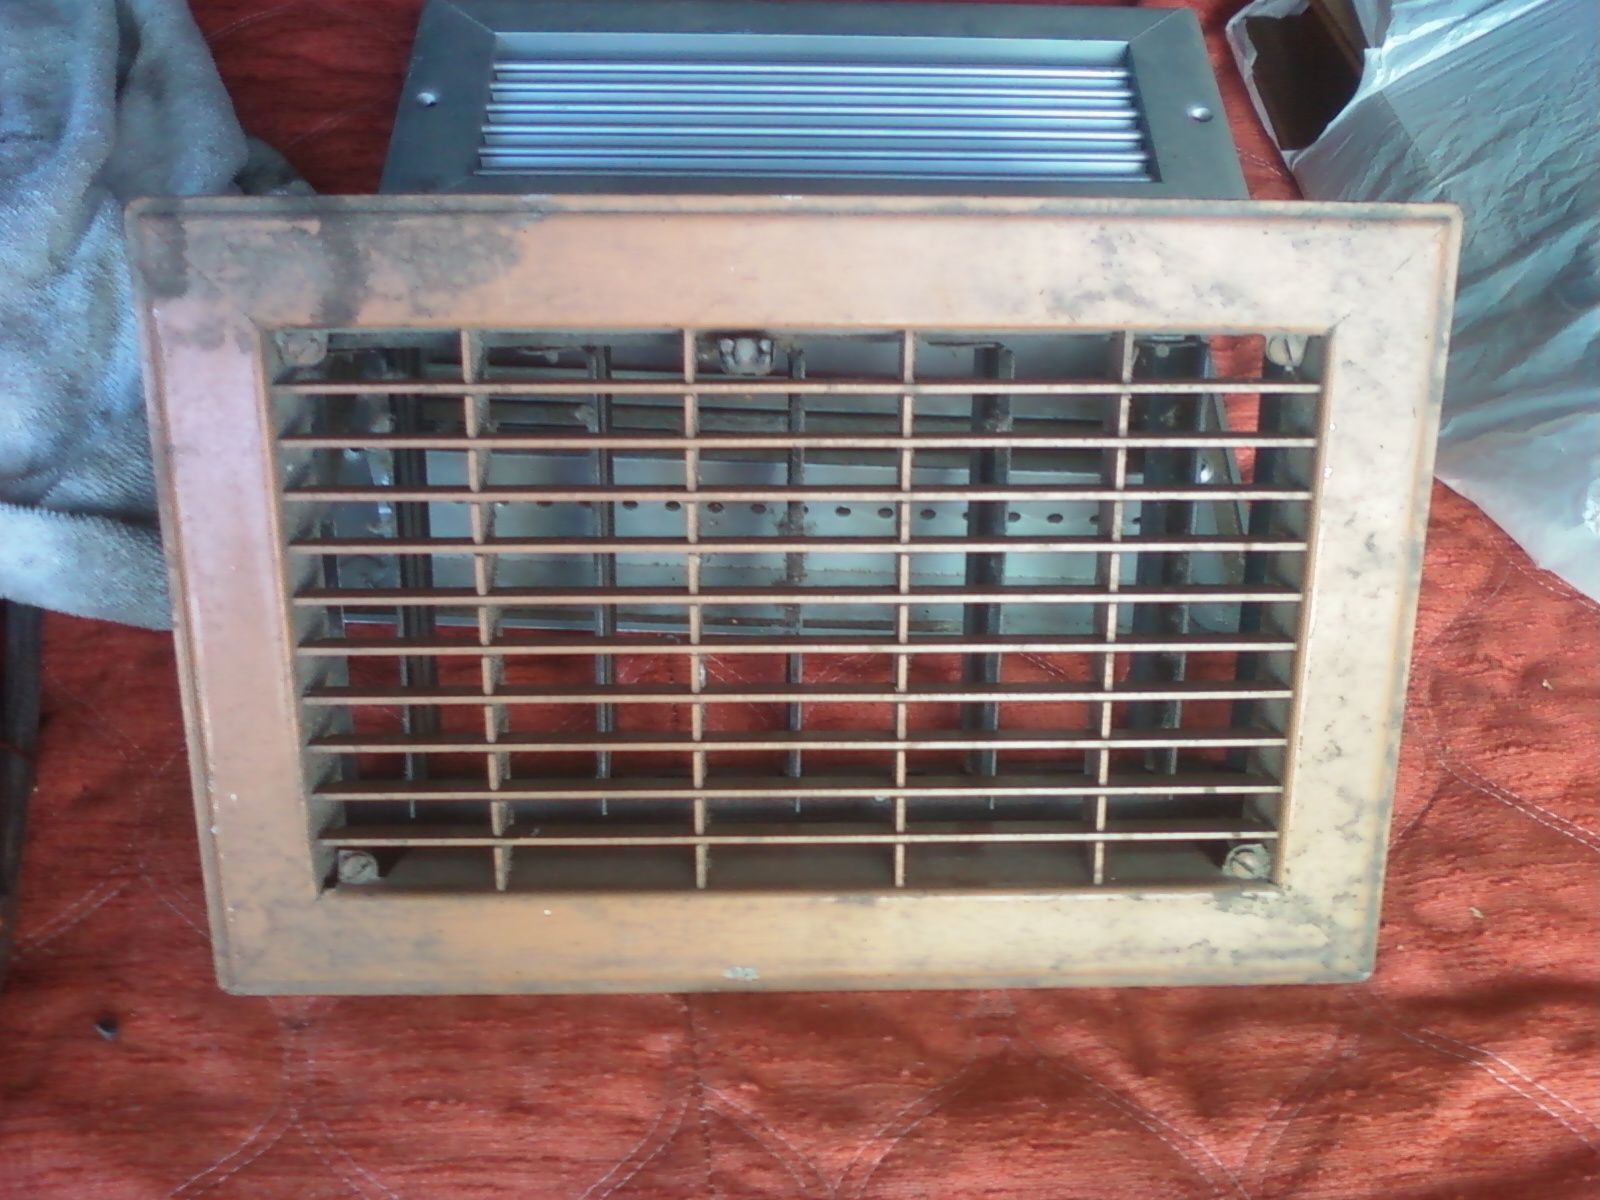 #387193 VINTAGE HEAT/AIR FLOOR WALL REGISTERS/VENTS For Sale  Highly Rated 4589 Hvac Wall Vents wallpapers with 1600x1200 px on helpvideos.info - Air Conditioners, Air Coolers and more